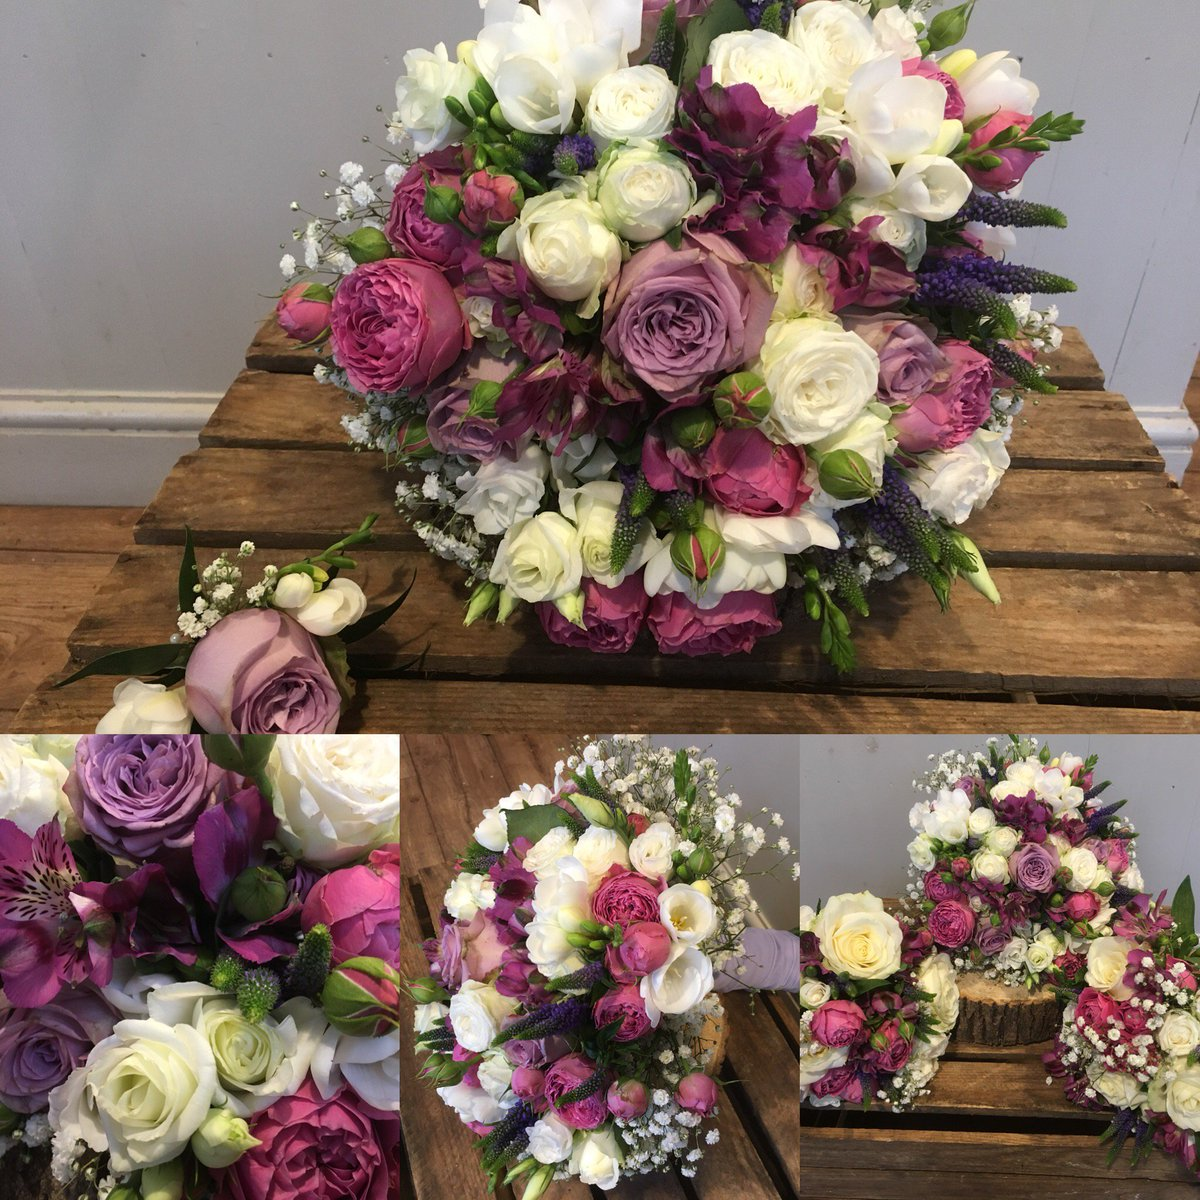 Louise james florist on twitter good evening gloshour louise james florist on twitter good evening gloshour malvernhillshour how are you this week we have been busy creating wedding and funeral flowers izmirmasajfo